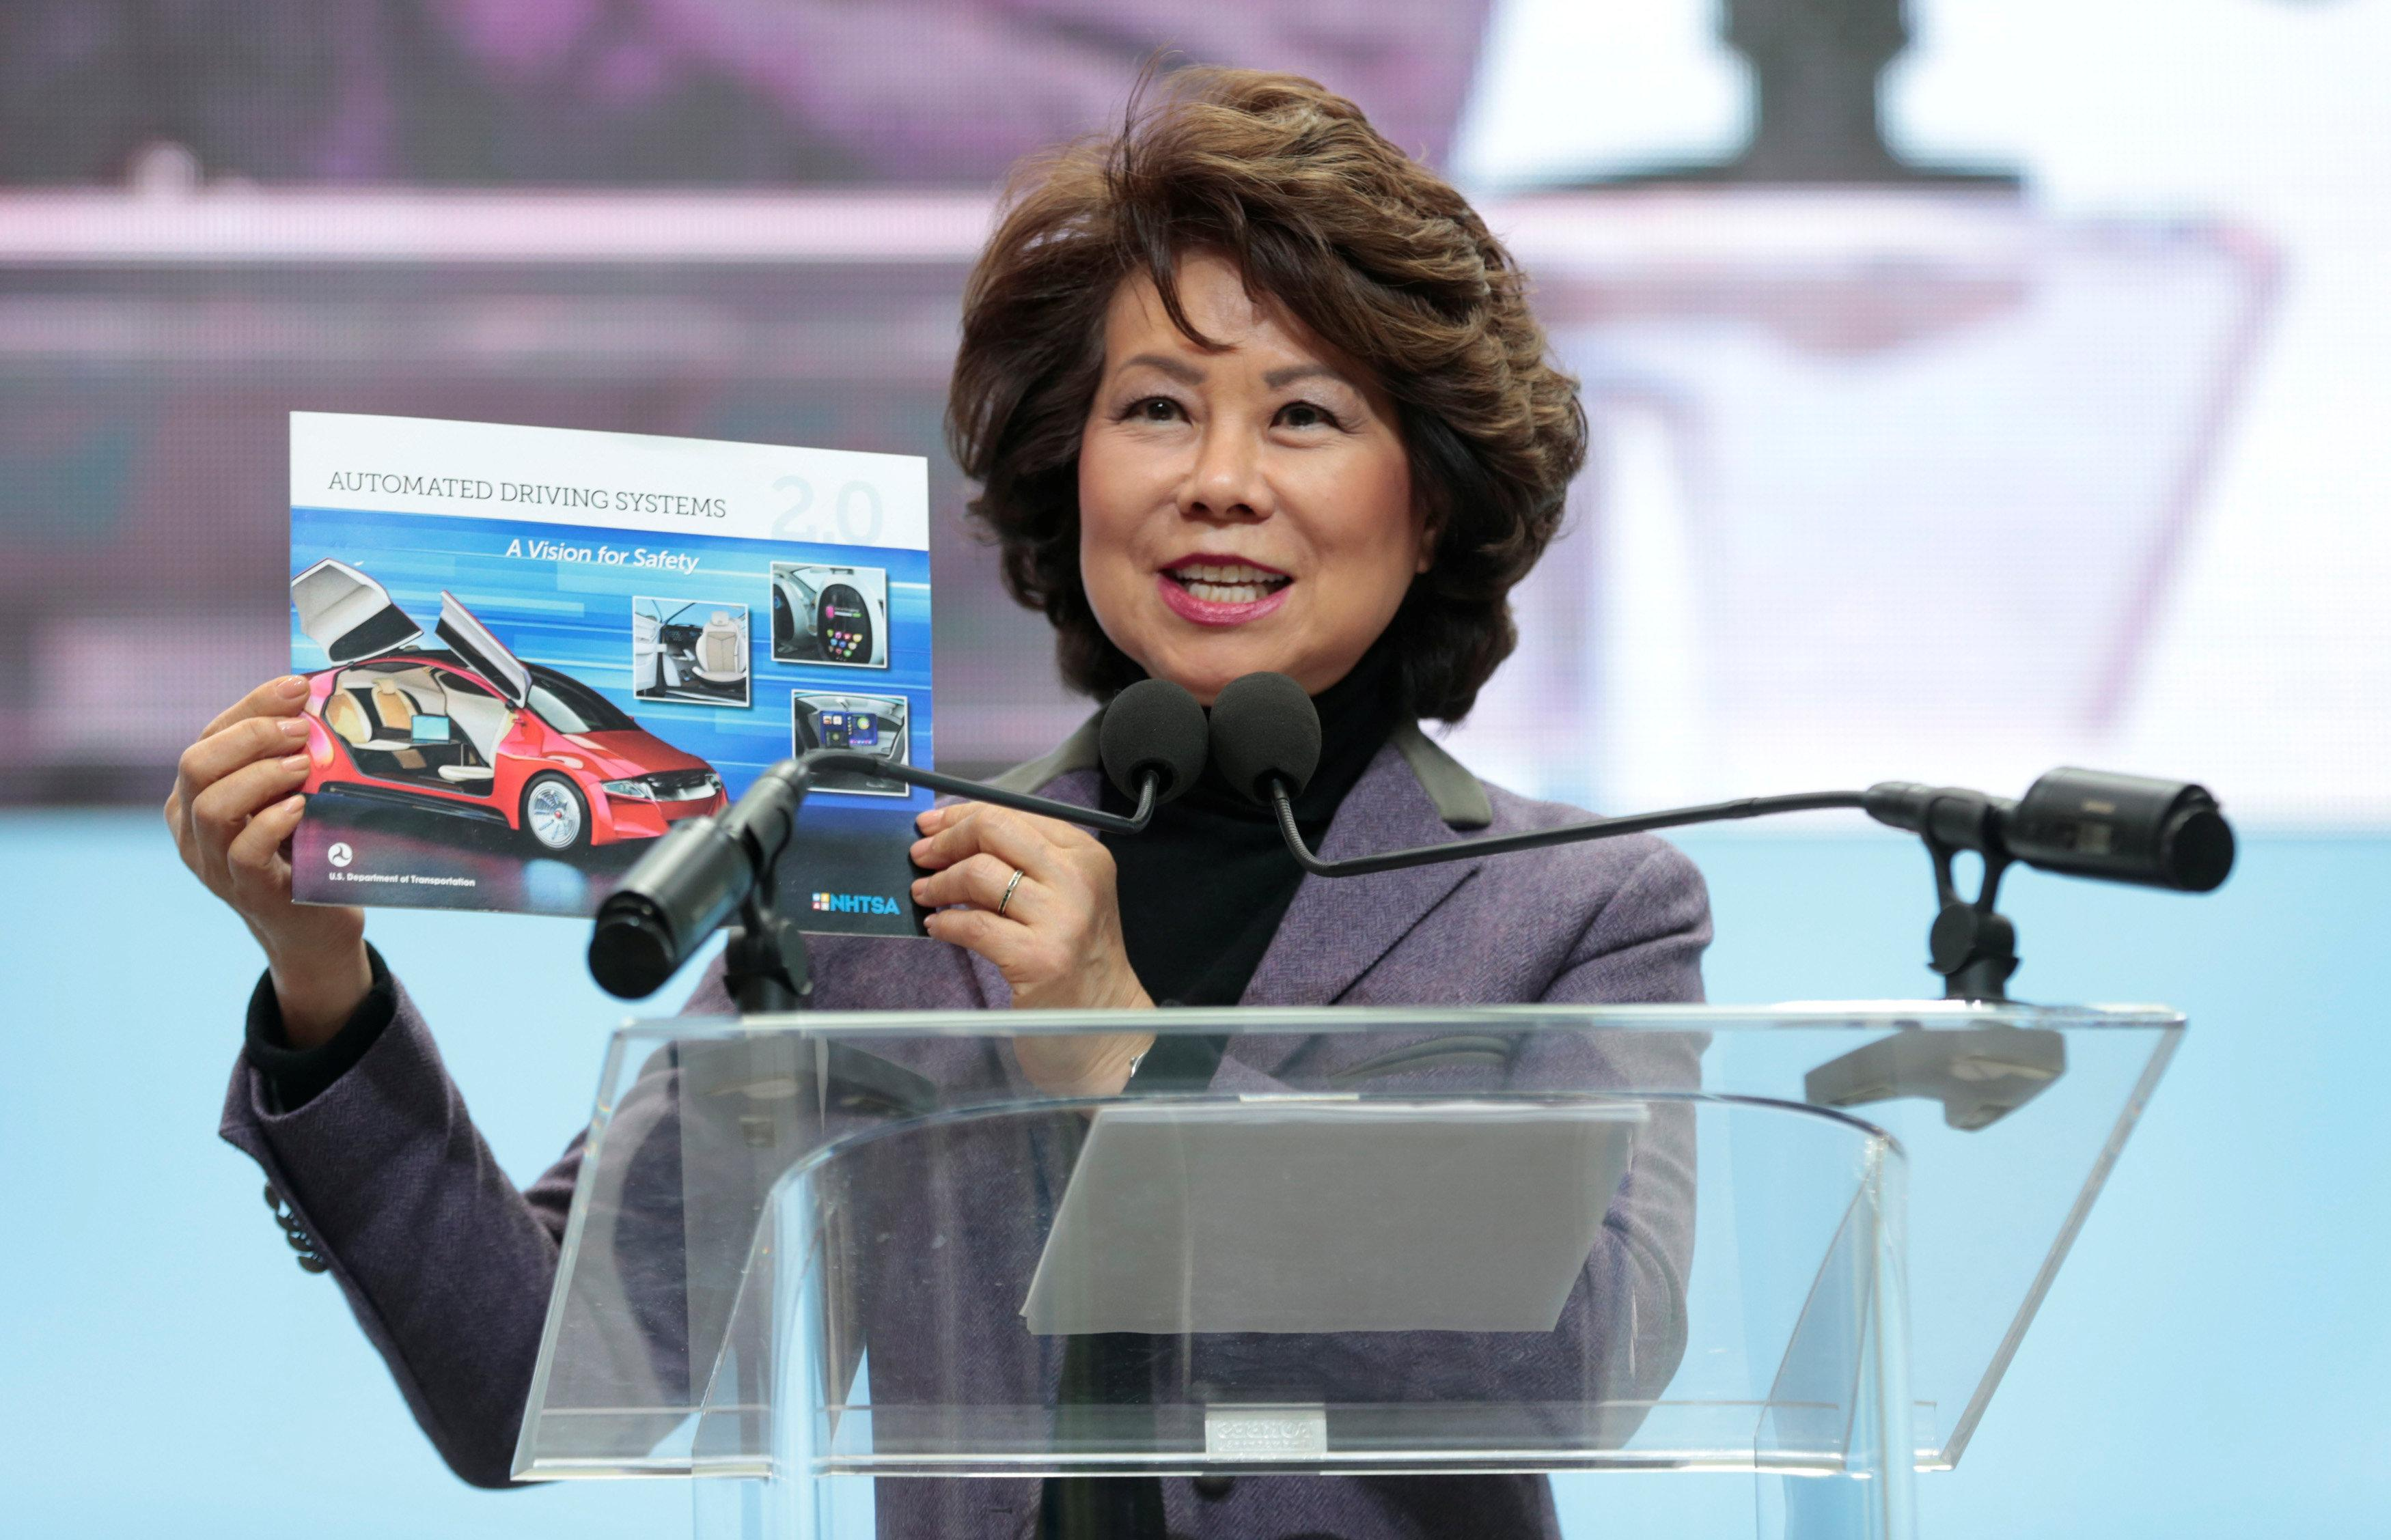 U.S. Secretary of Transportation Elaine Chao speaks ahead of Press Days of the North American International Auto Show at Cobo Center in Detroit, Michigan, U.S., January 14, 2018. Rebecca Cook